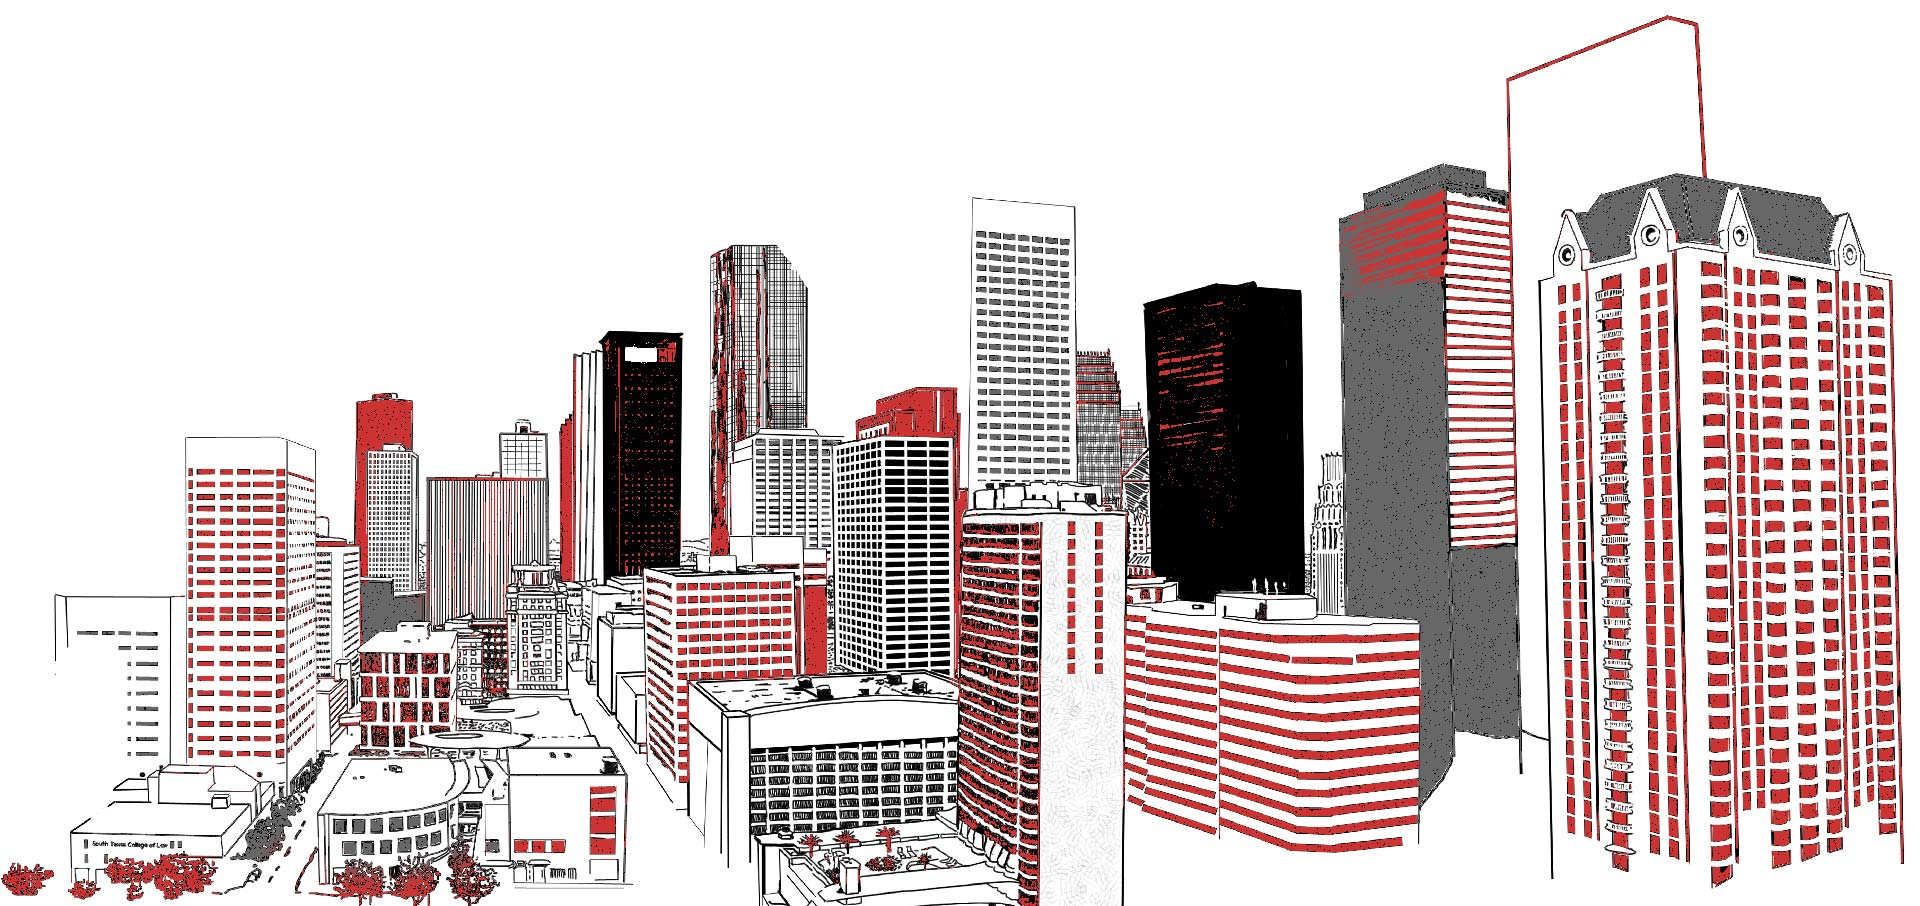 lineart drawing of the Houston, Texas skyline